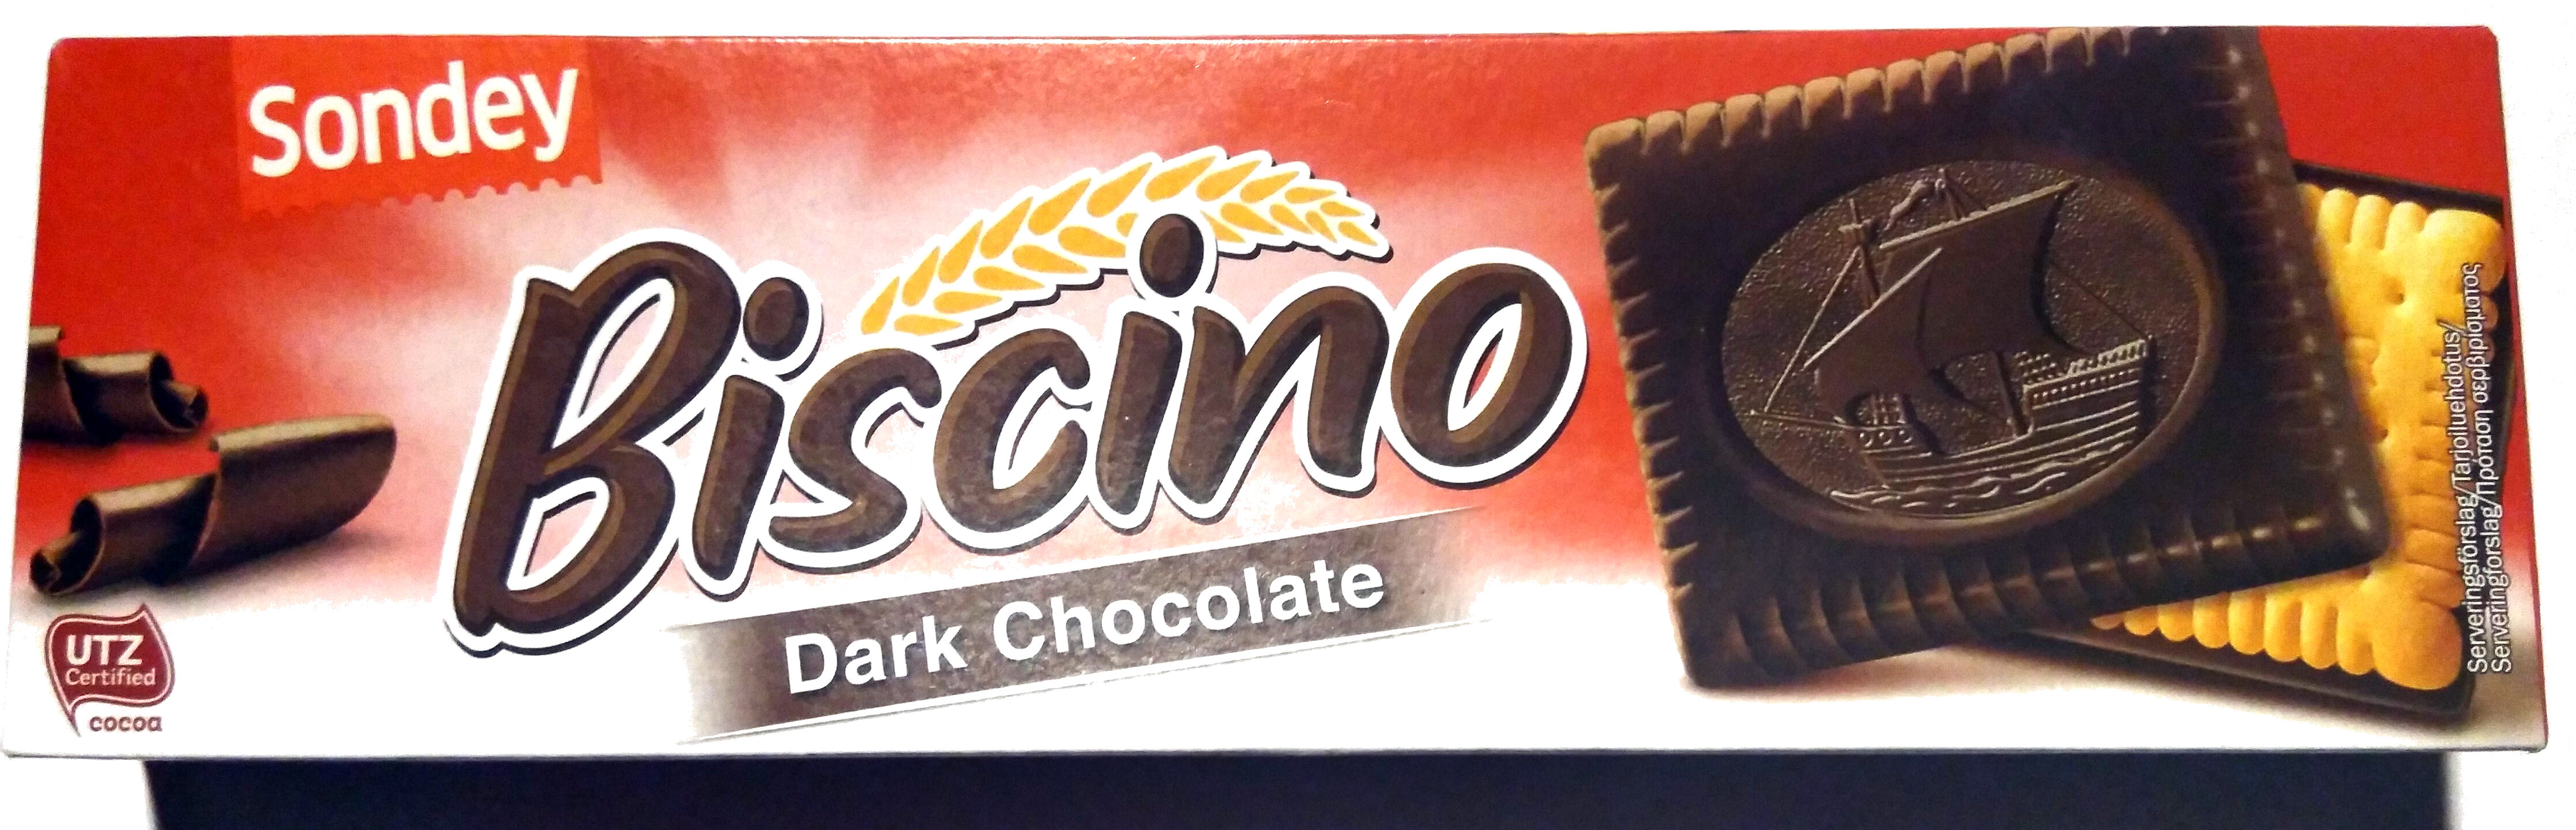 Biscino Dark Chocolate - Prodotto - fi